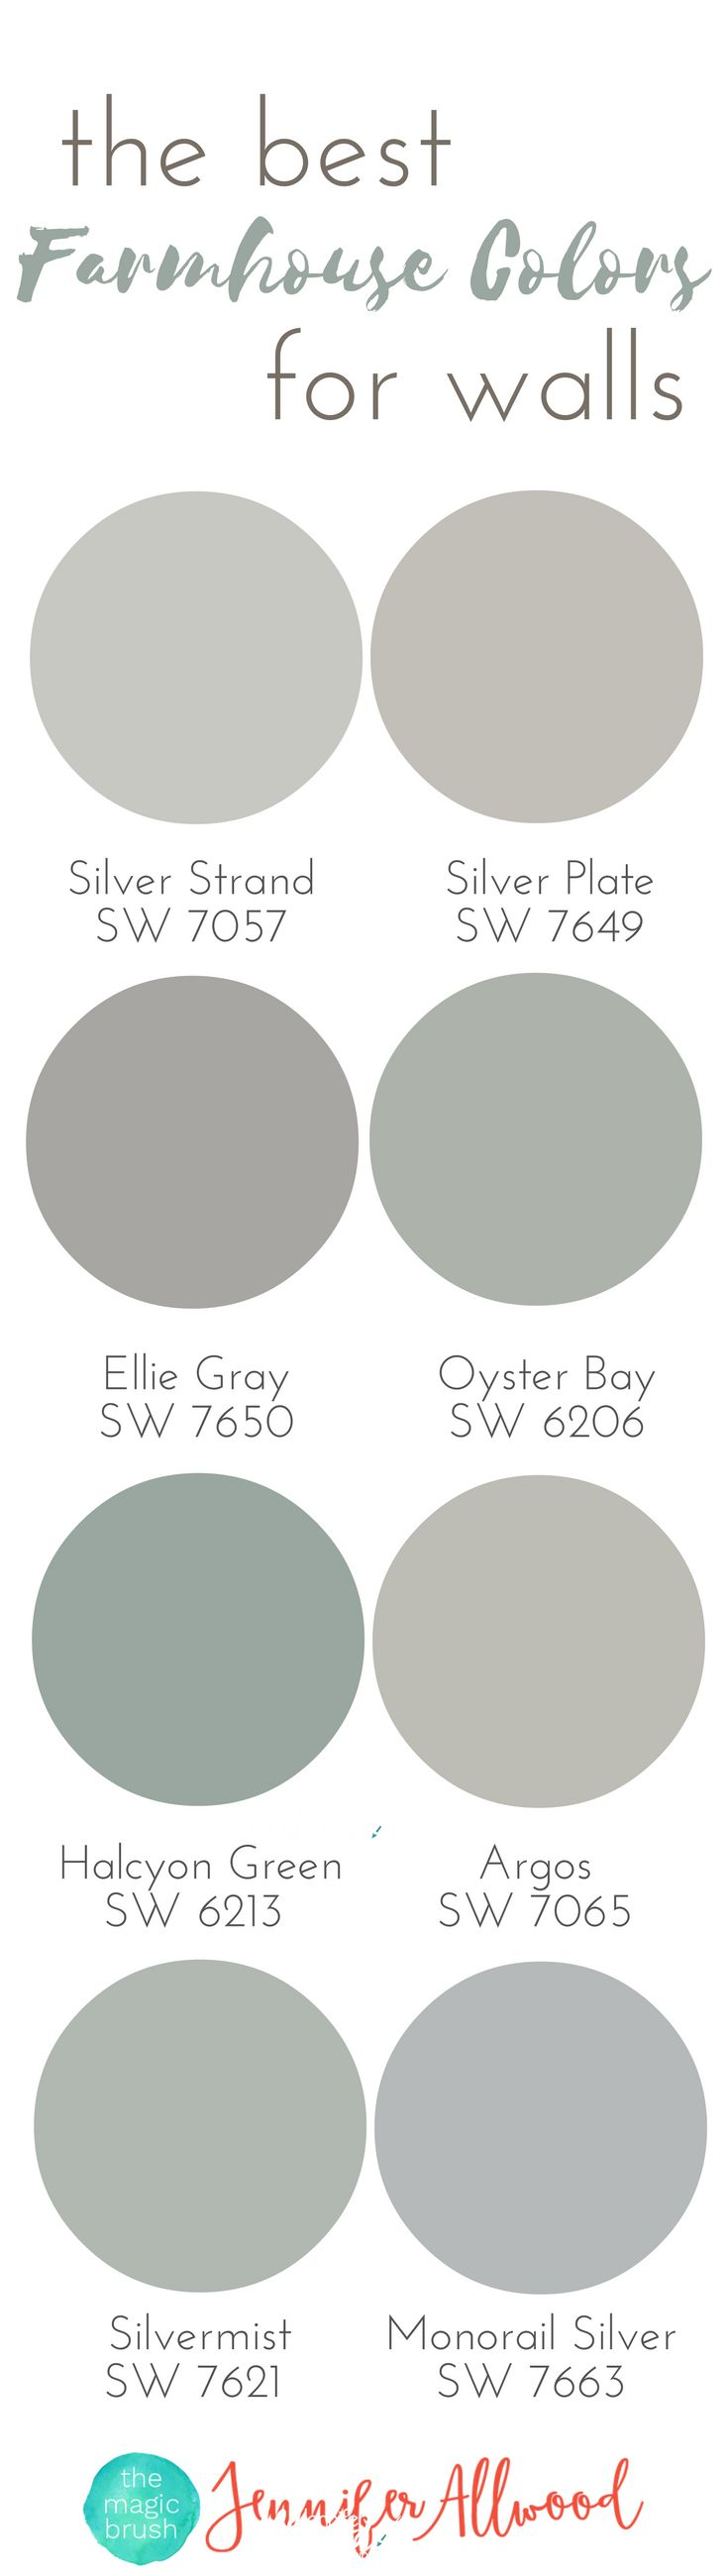 paint colors for walls neutral wall colors interior paint colors color. Black Bedroom Furniture Sets. Home Design Ideas